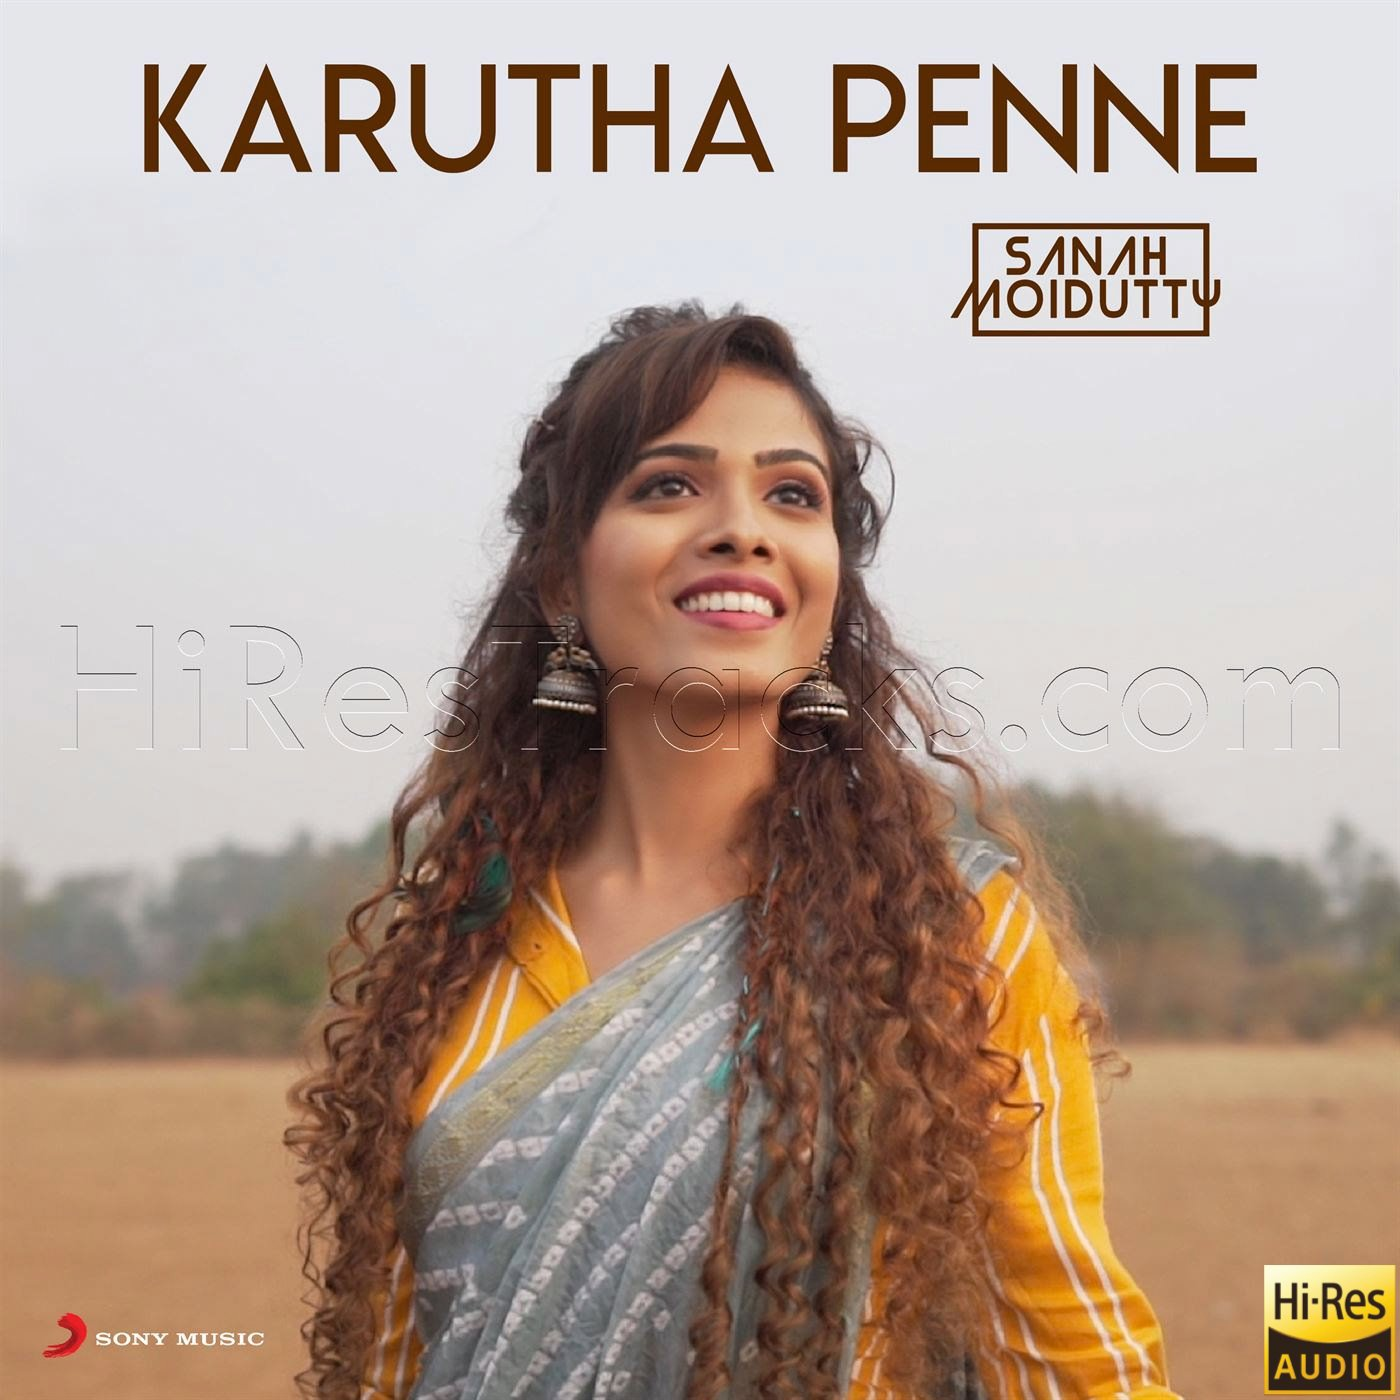 Karutha Penne (Rendition) – Single (2019) [24 BIT-48 KHZ]